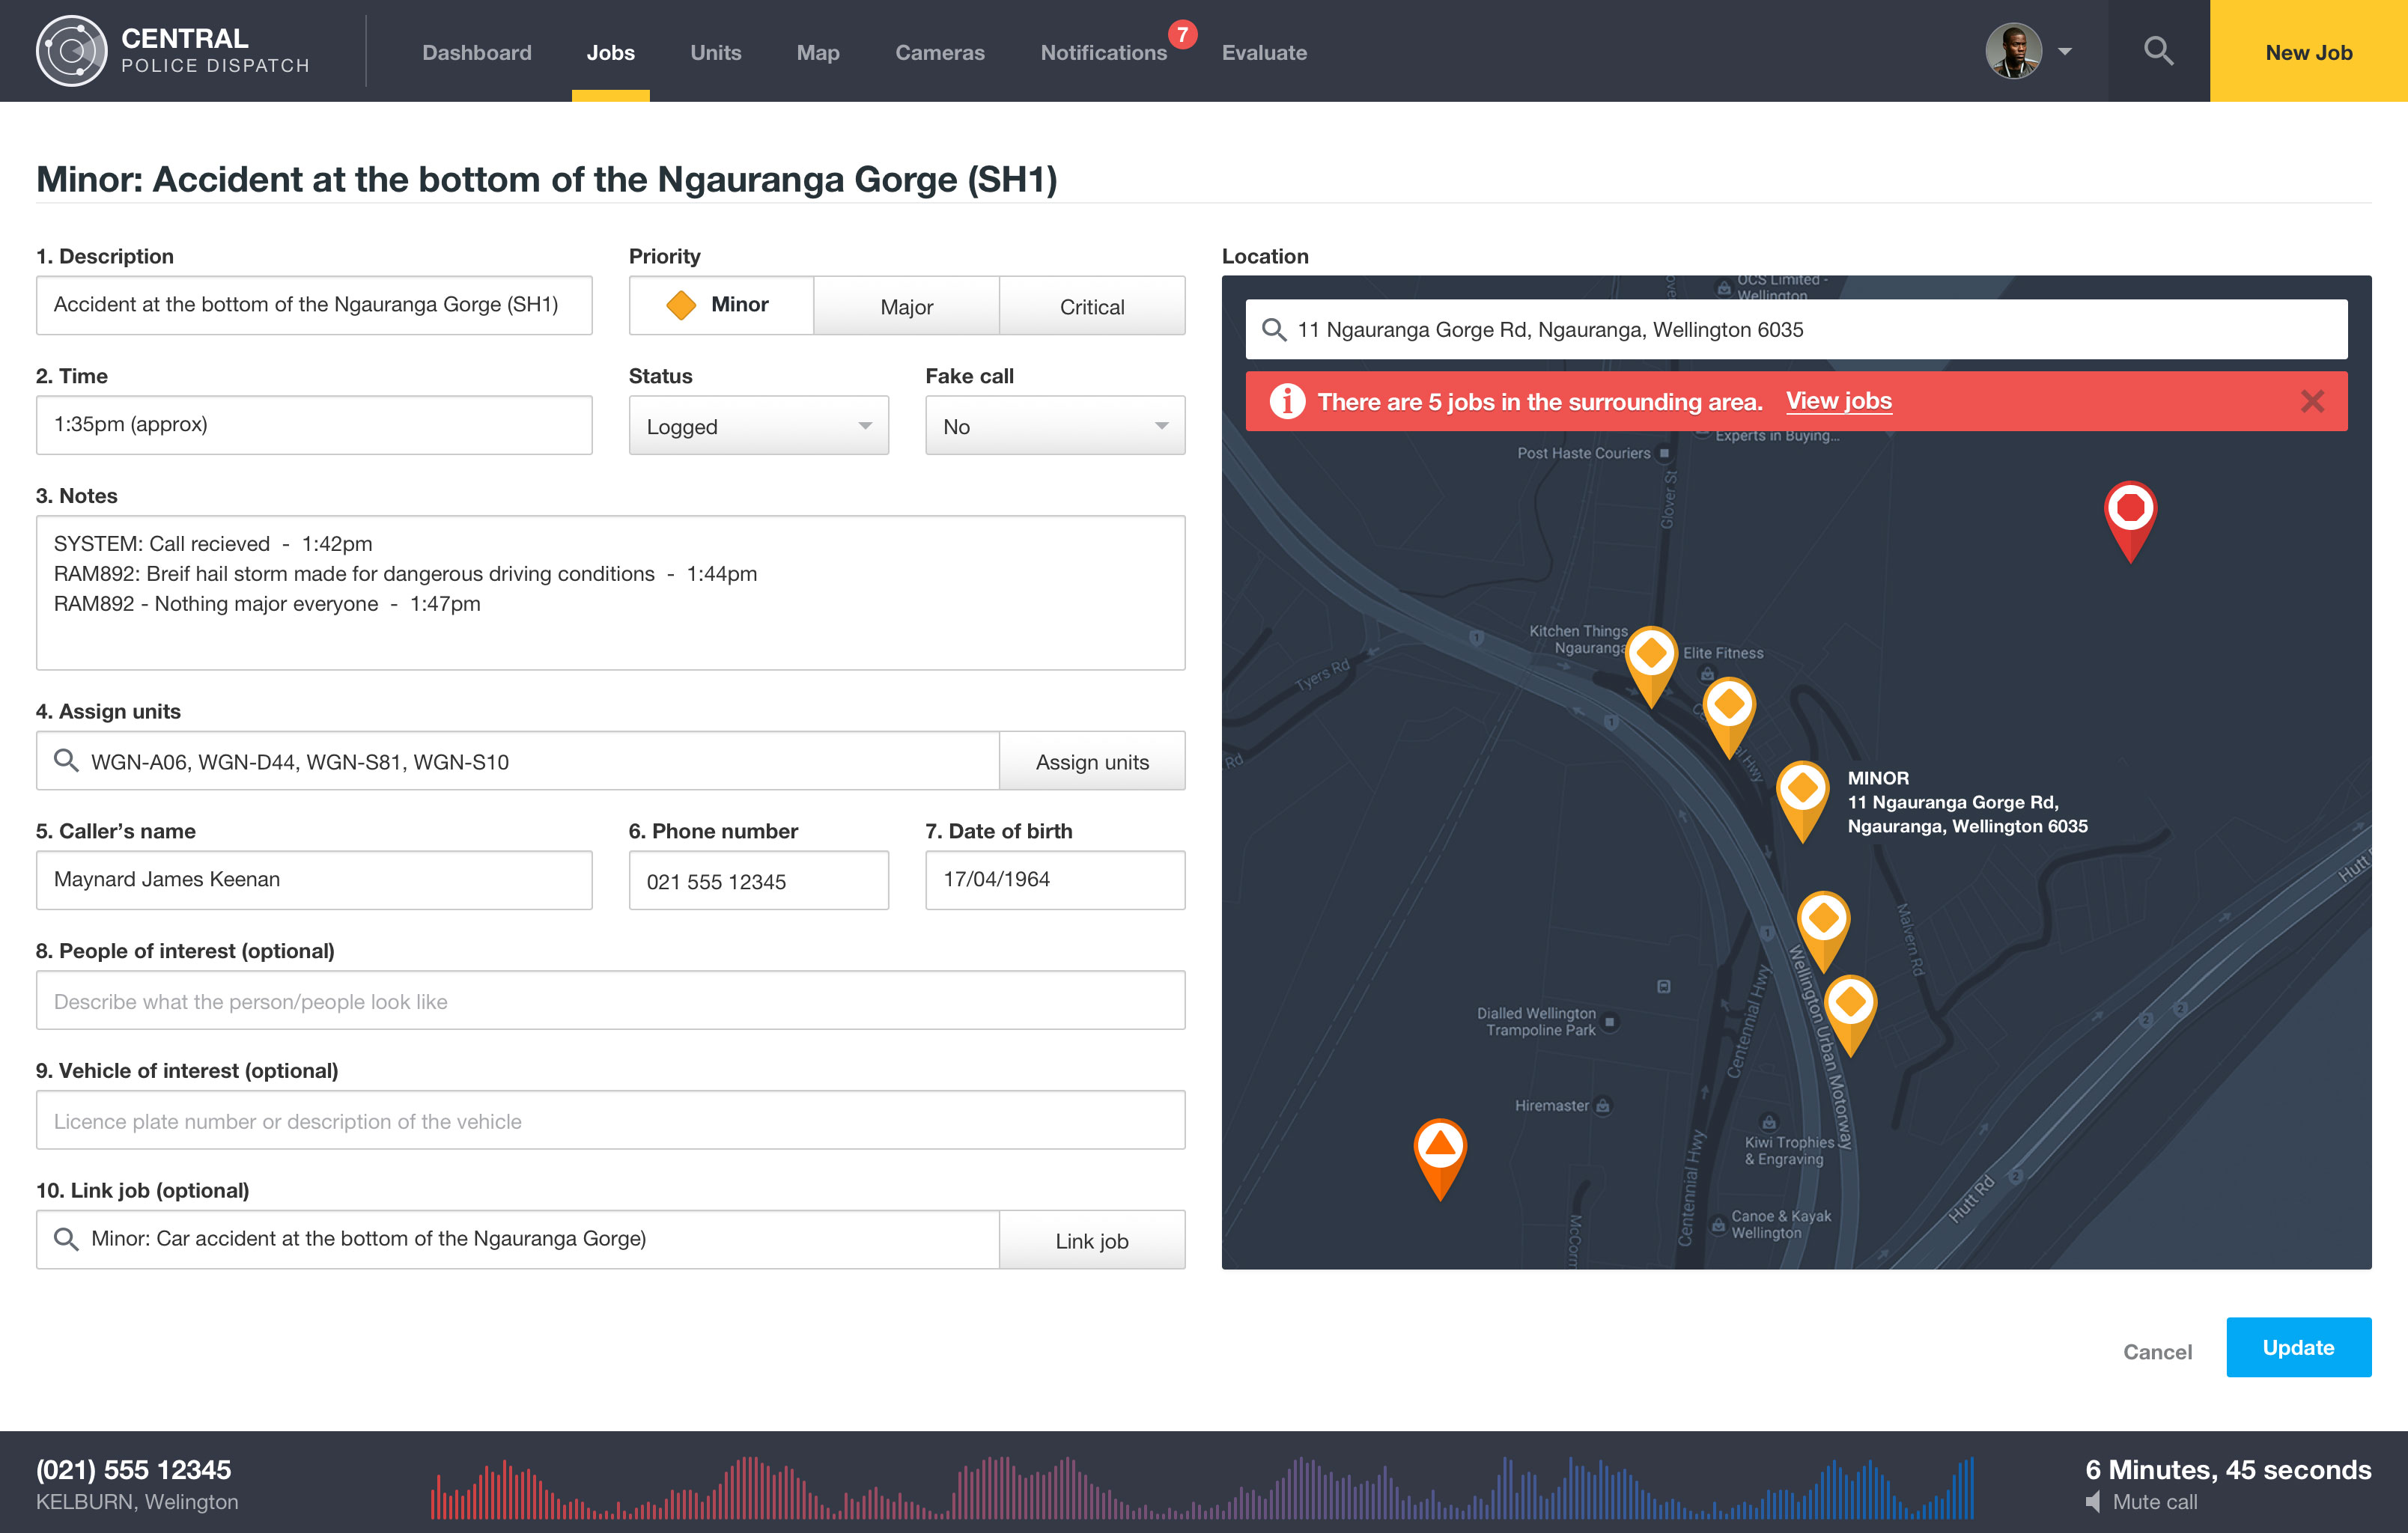 Police dispatch dashboard jobs with alerts